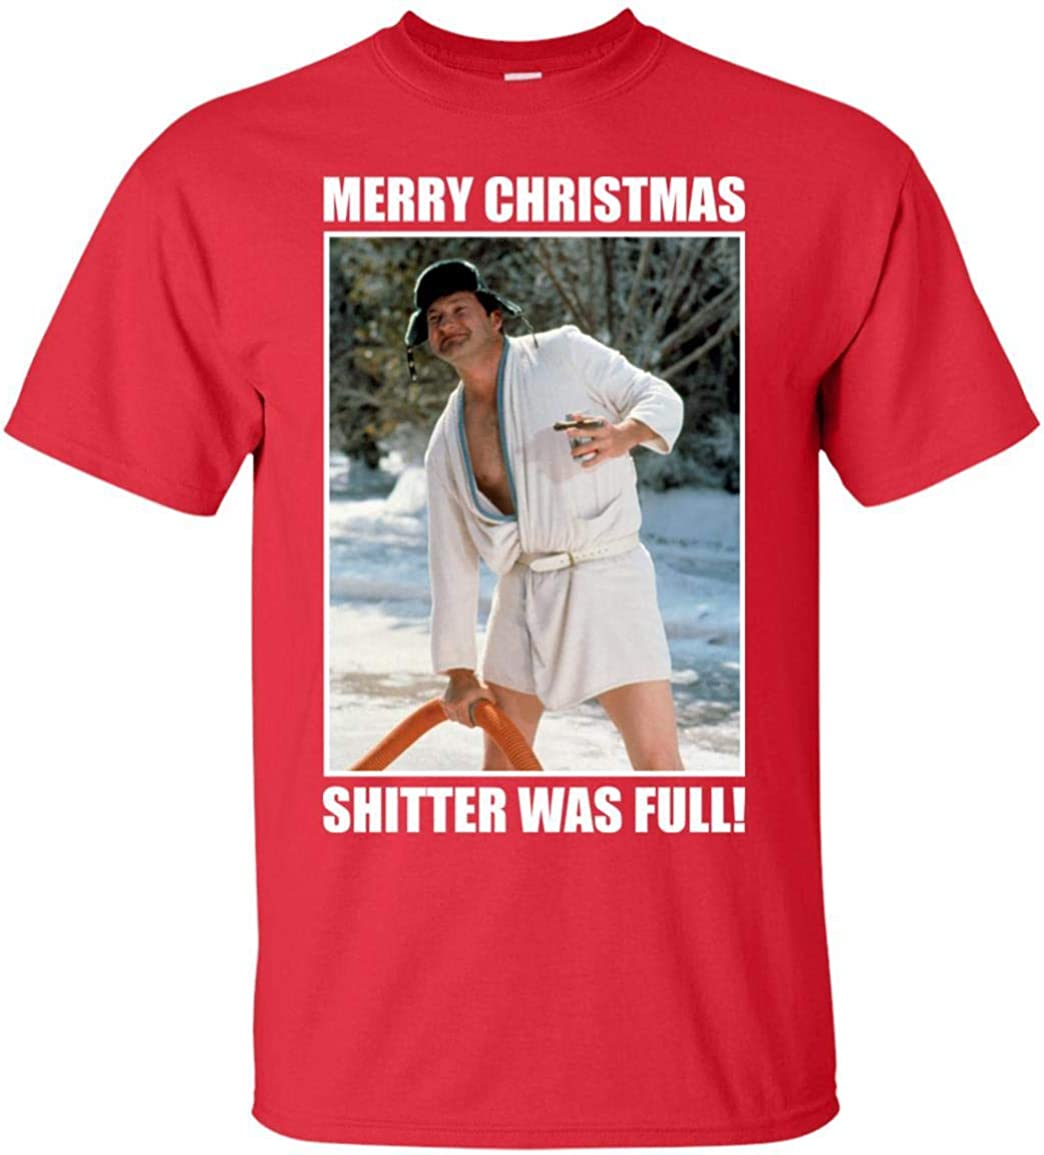 National Lampoons Vacation Merry Christmas Shitter Was Full T Shirt Long Sleeve Sweatshirt Hoodie for Men and Women